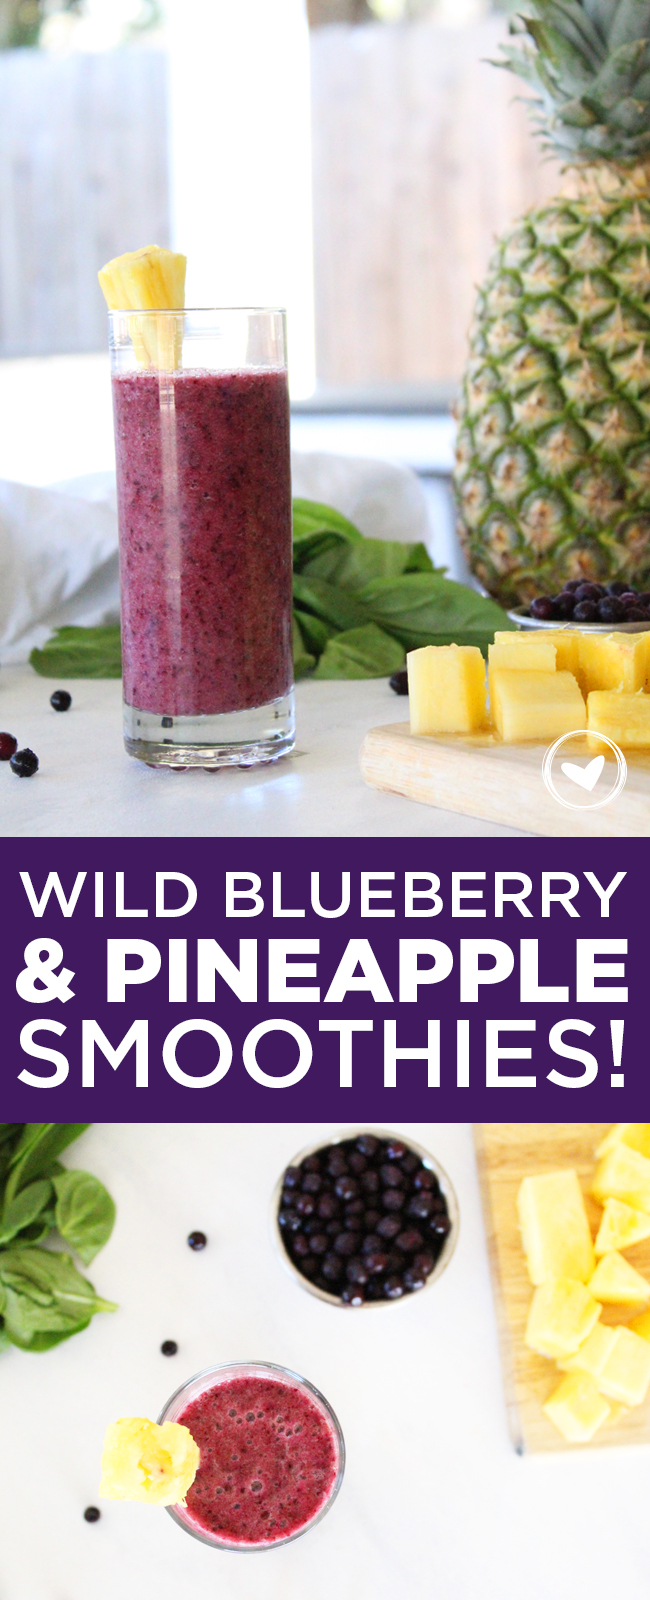 wild blueberry and pineapple smoothies